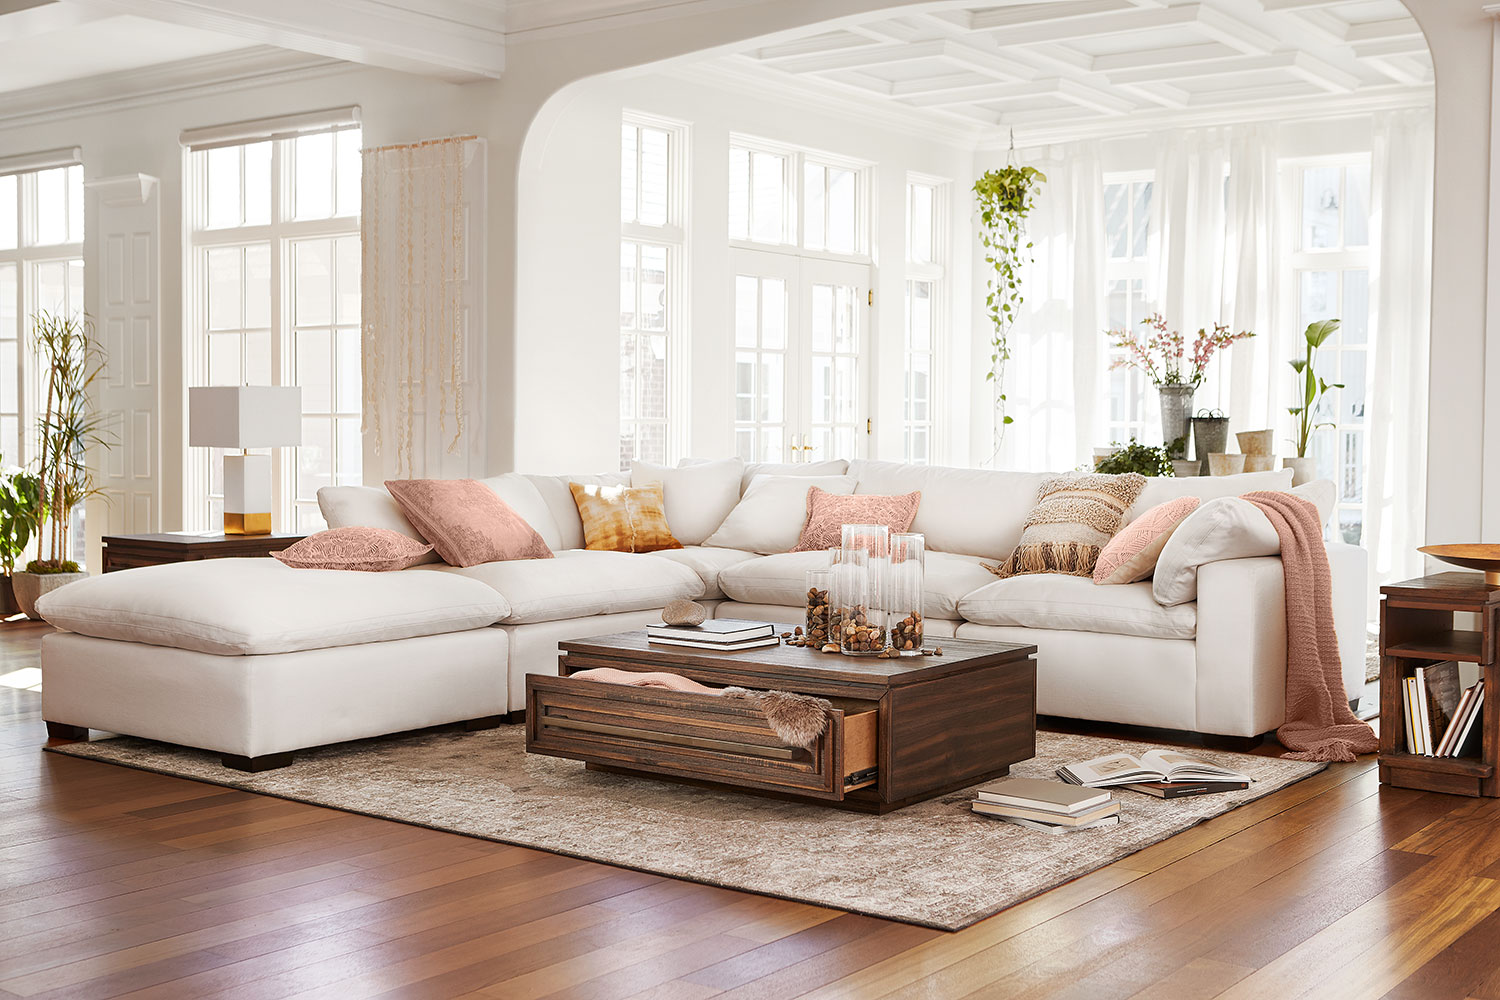 Sensational Plush 4 Piece Sectional And Ottoman Ivory Pabps2019 Chair Design Images Pabps2019Com